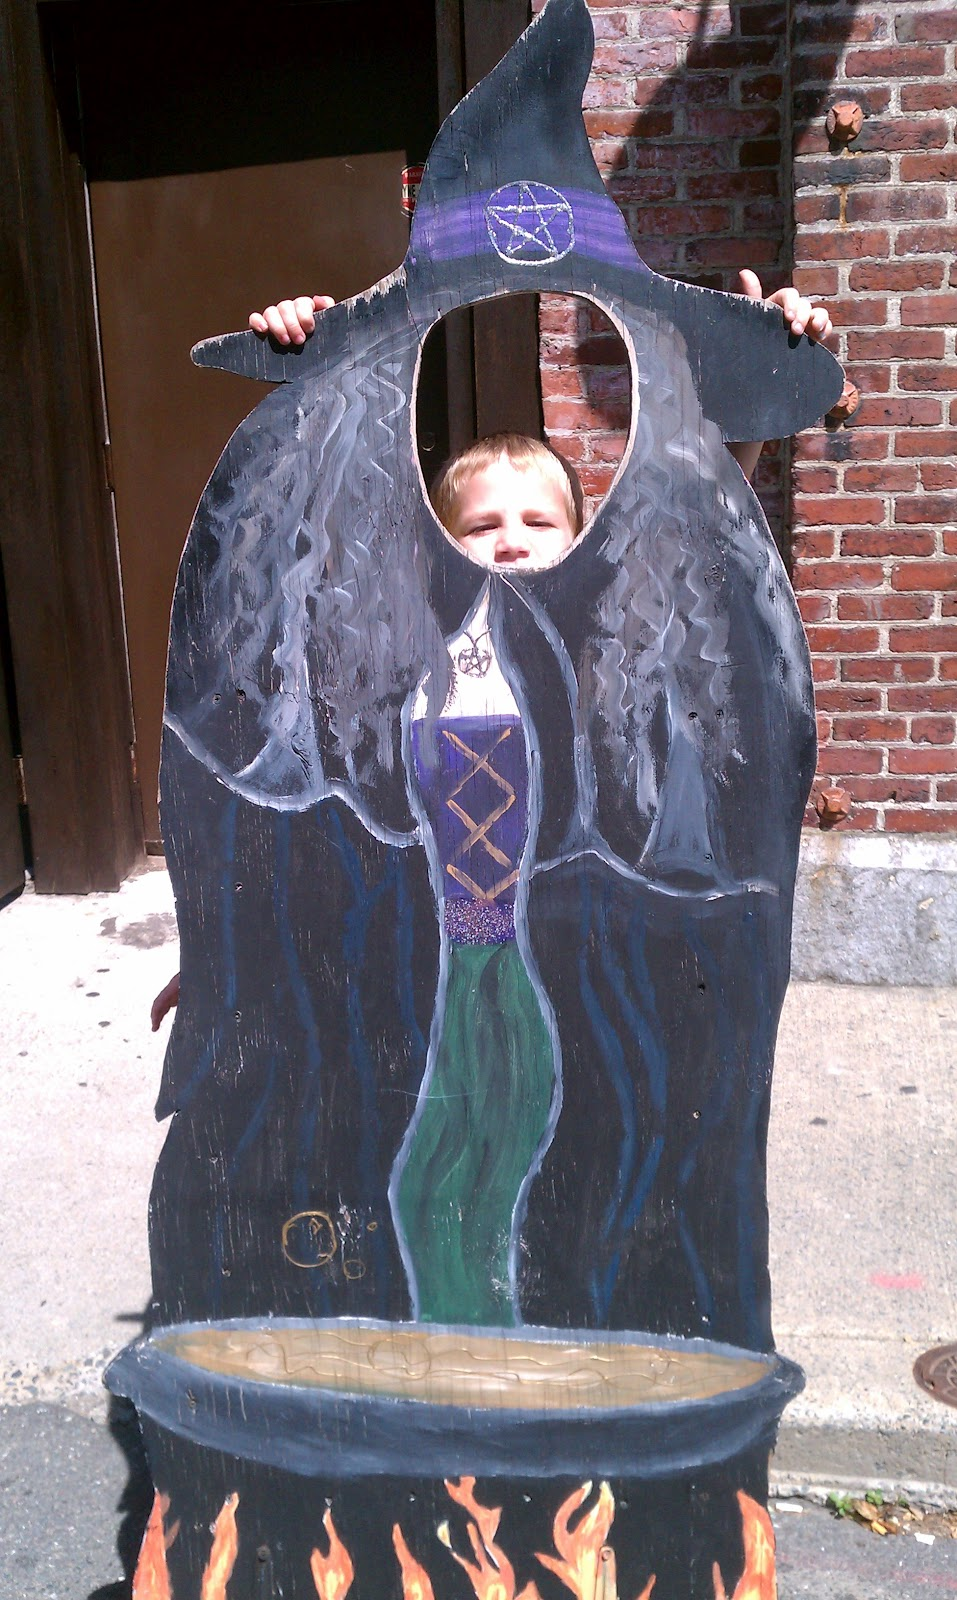 salem witch trail Learn more about the 1692 witch trials, which happened right here in salem, massachusetts visit famous sites, cemeteries and museums, or take a witch tour.